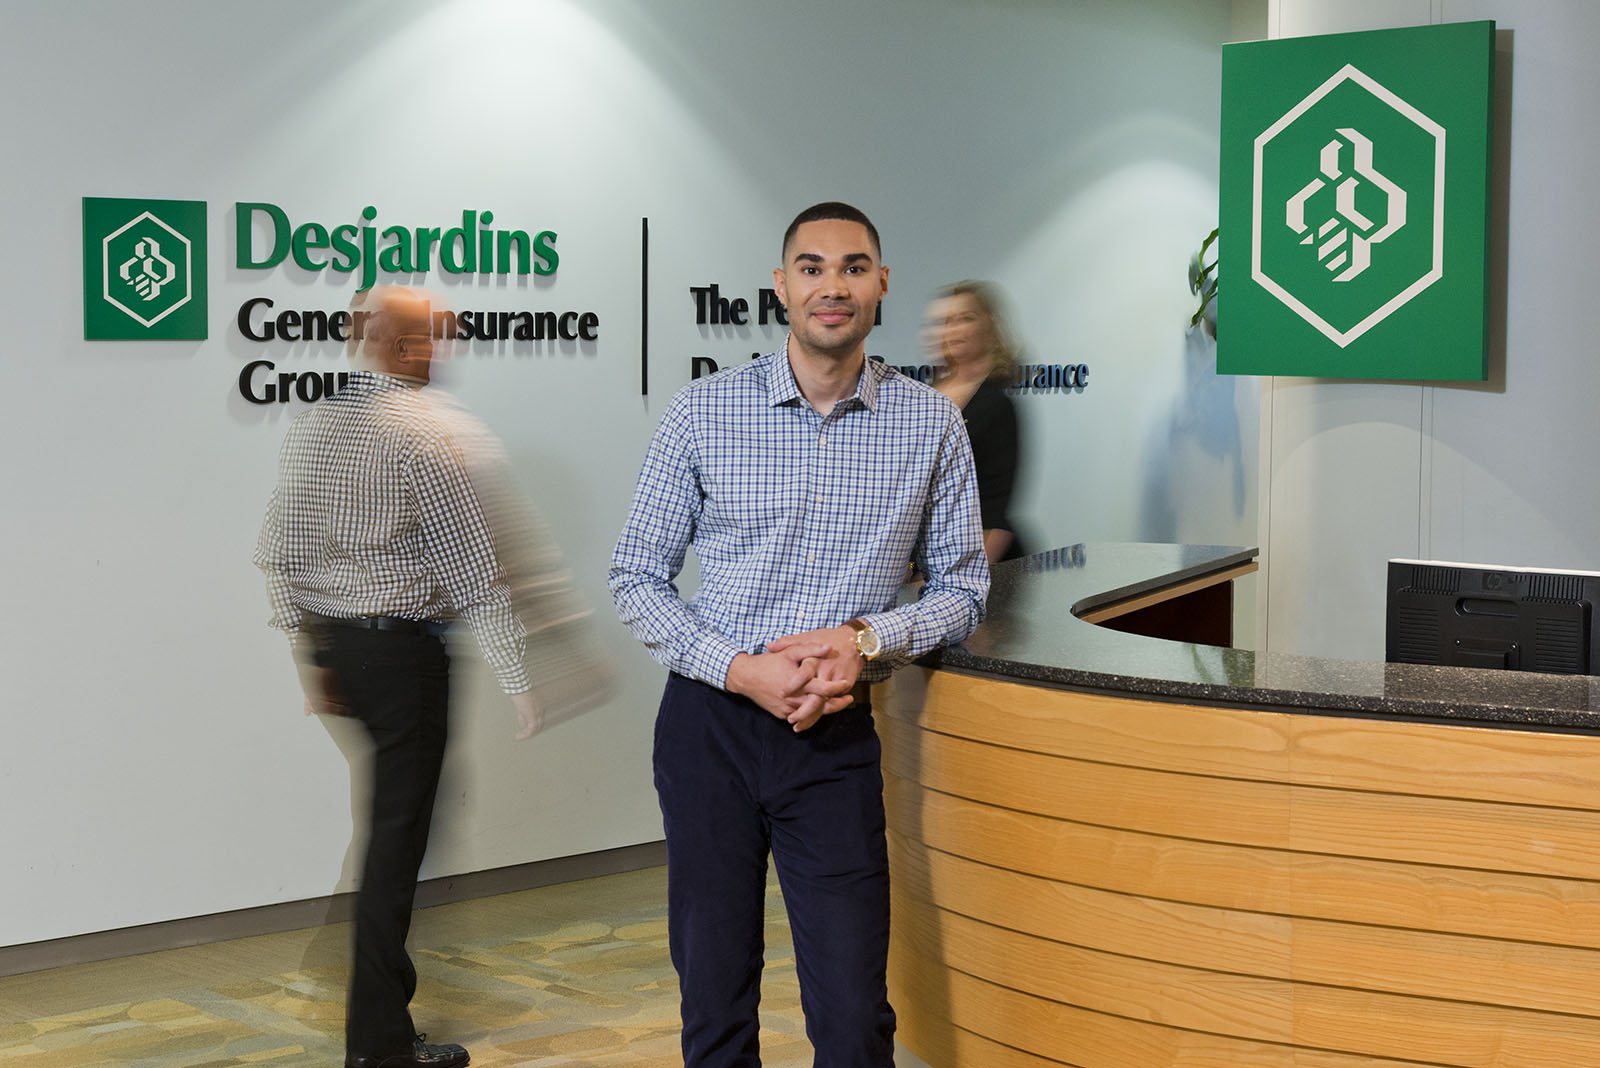 Desjardins office reception area with one man leaning on desk